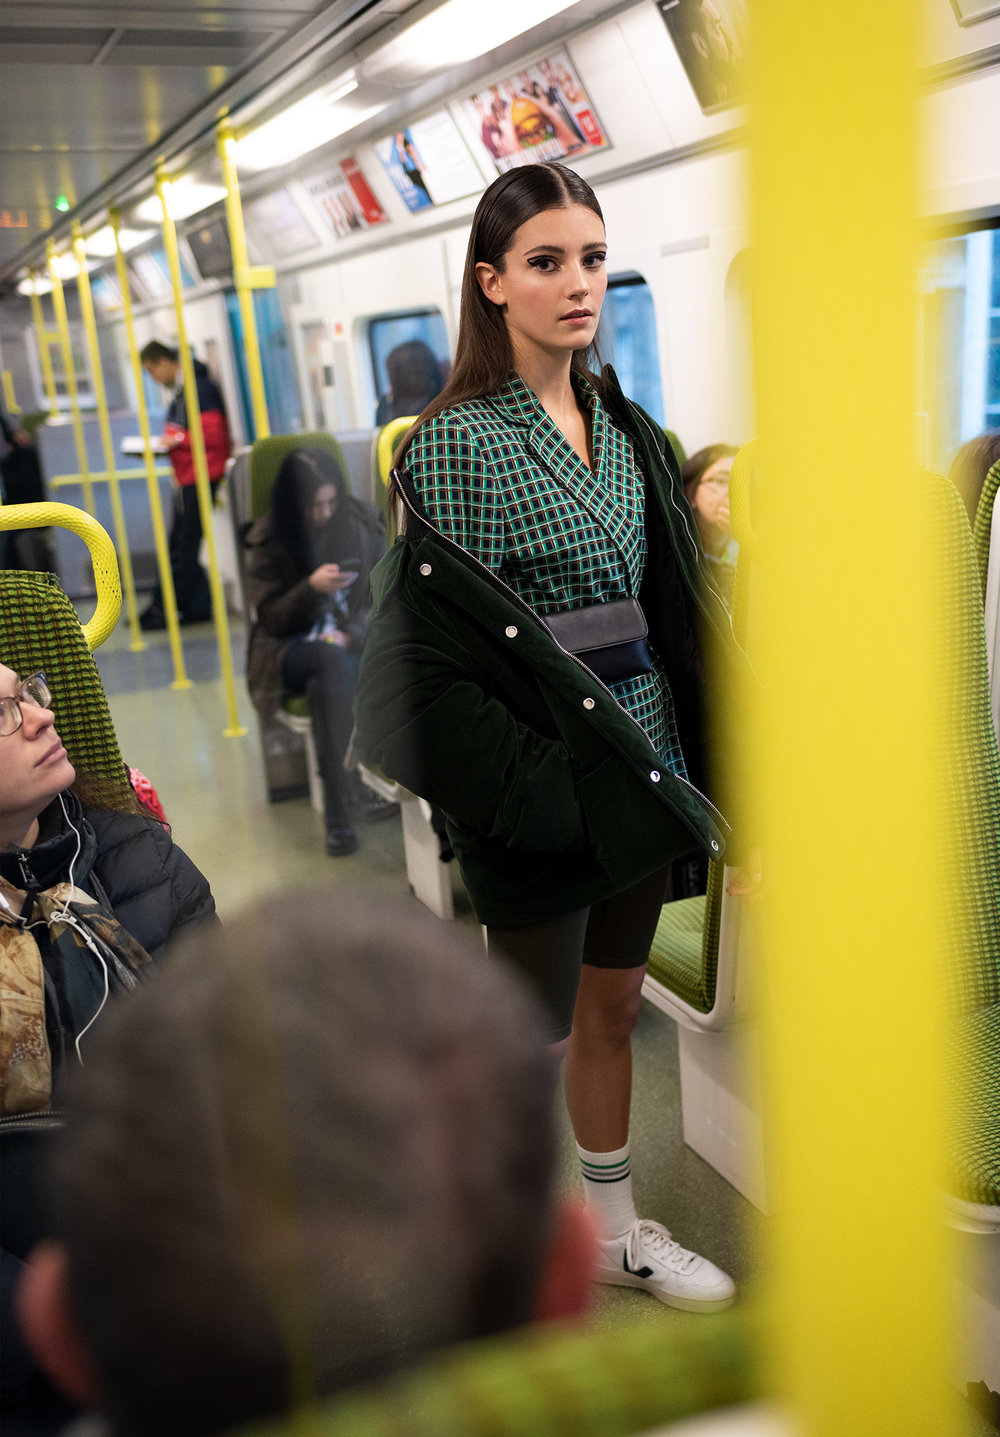 Second-look-green-standing-middle-of-train-full-body-5468.jpg